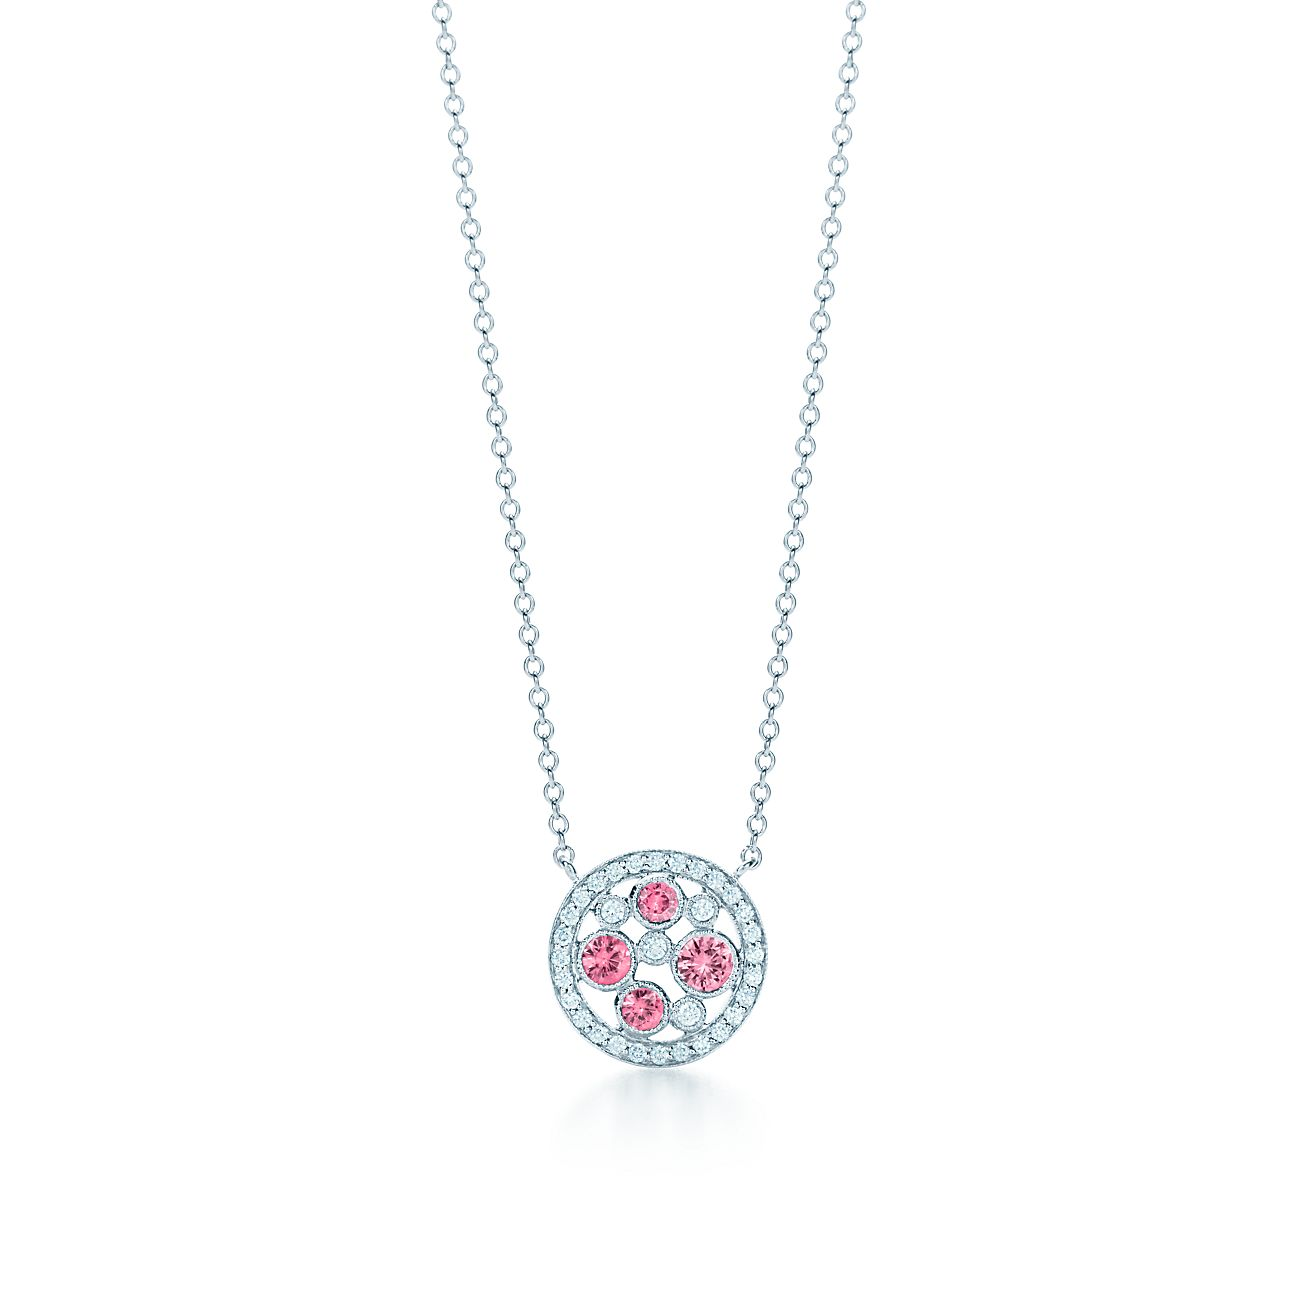 a5f675571 Tiffany Cobblestone Pendant In Platinum With Pink Sapphires